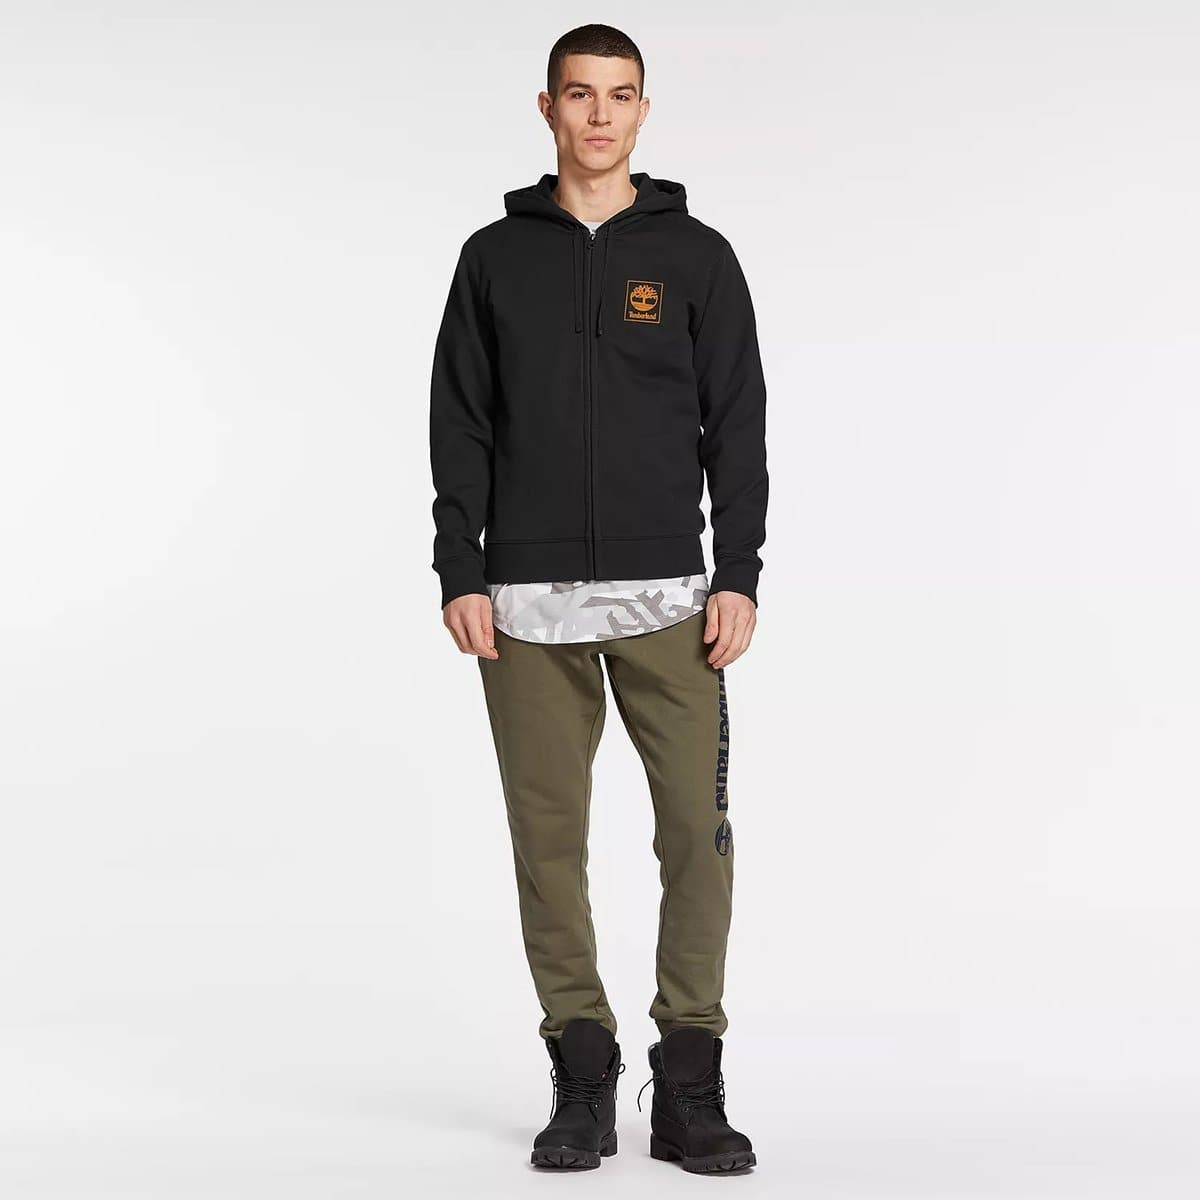 M Top | SLS zip hoodie seasonal Black/,FQ